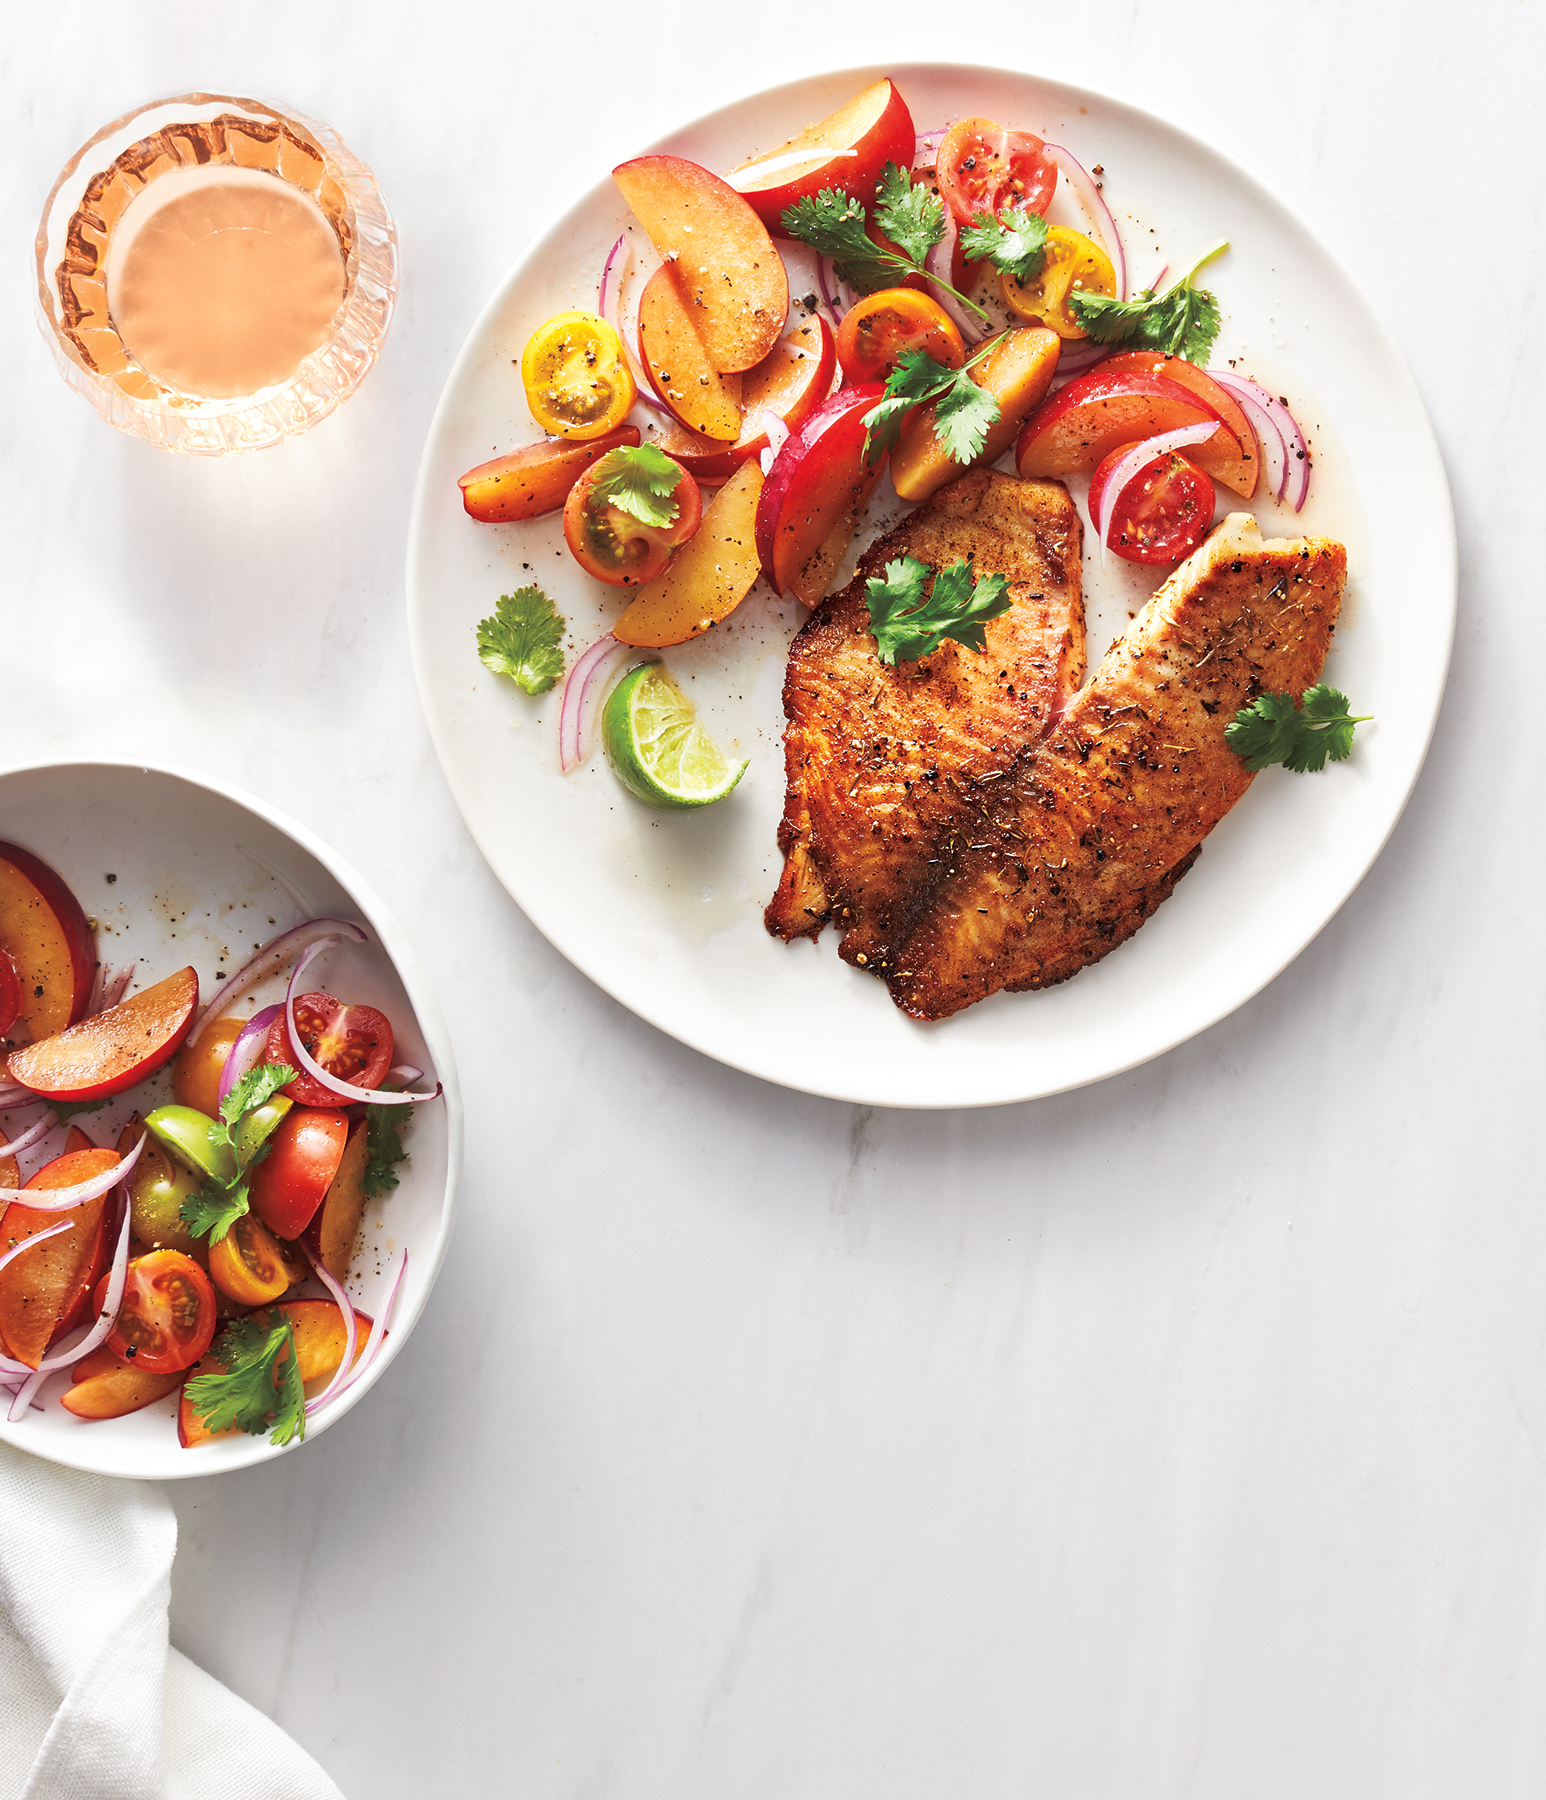 Blackened Tilapia With Peach-Tomato Salad